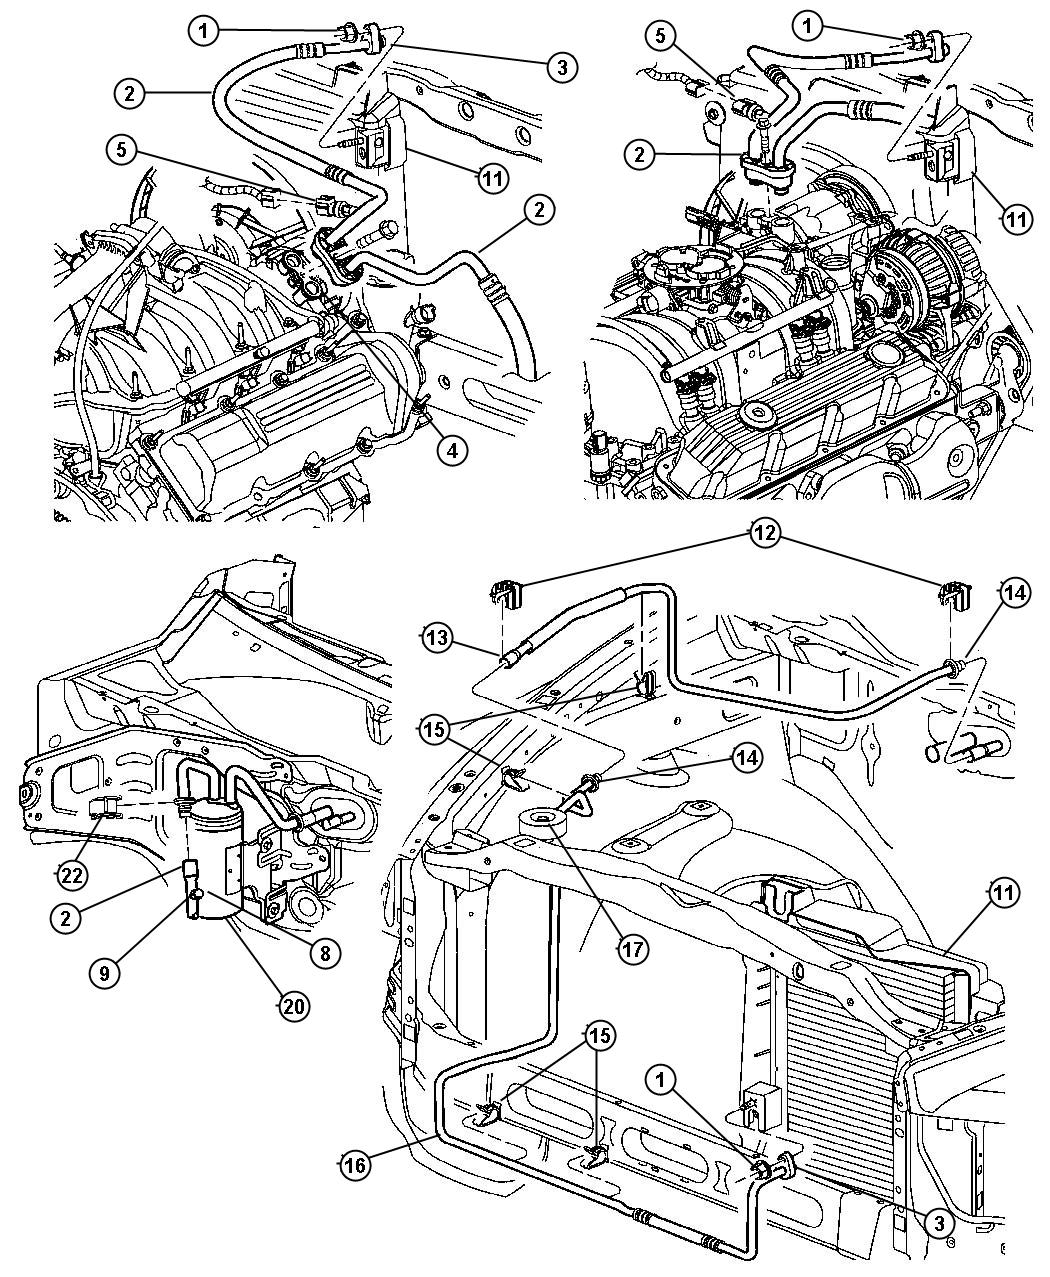 Dodge Ram 1500 Line. Used for: a/c suction and discharge